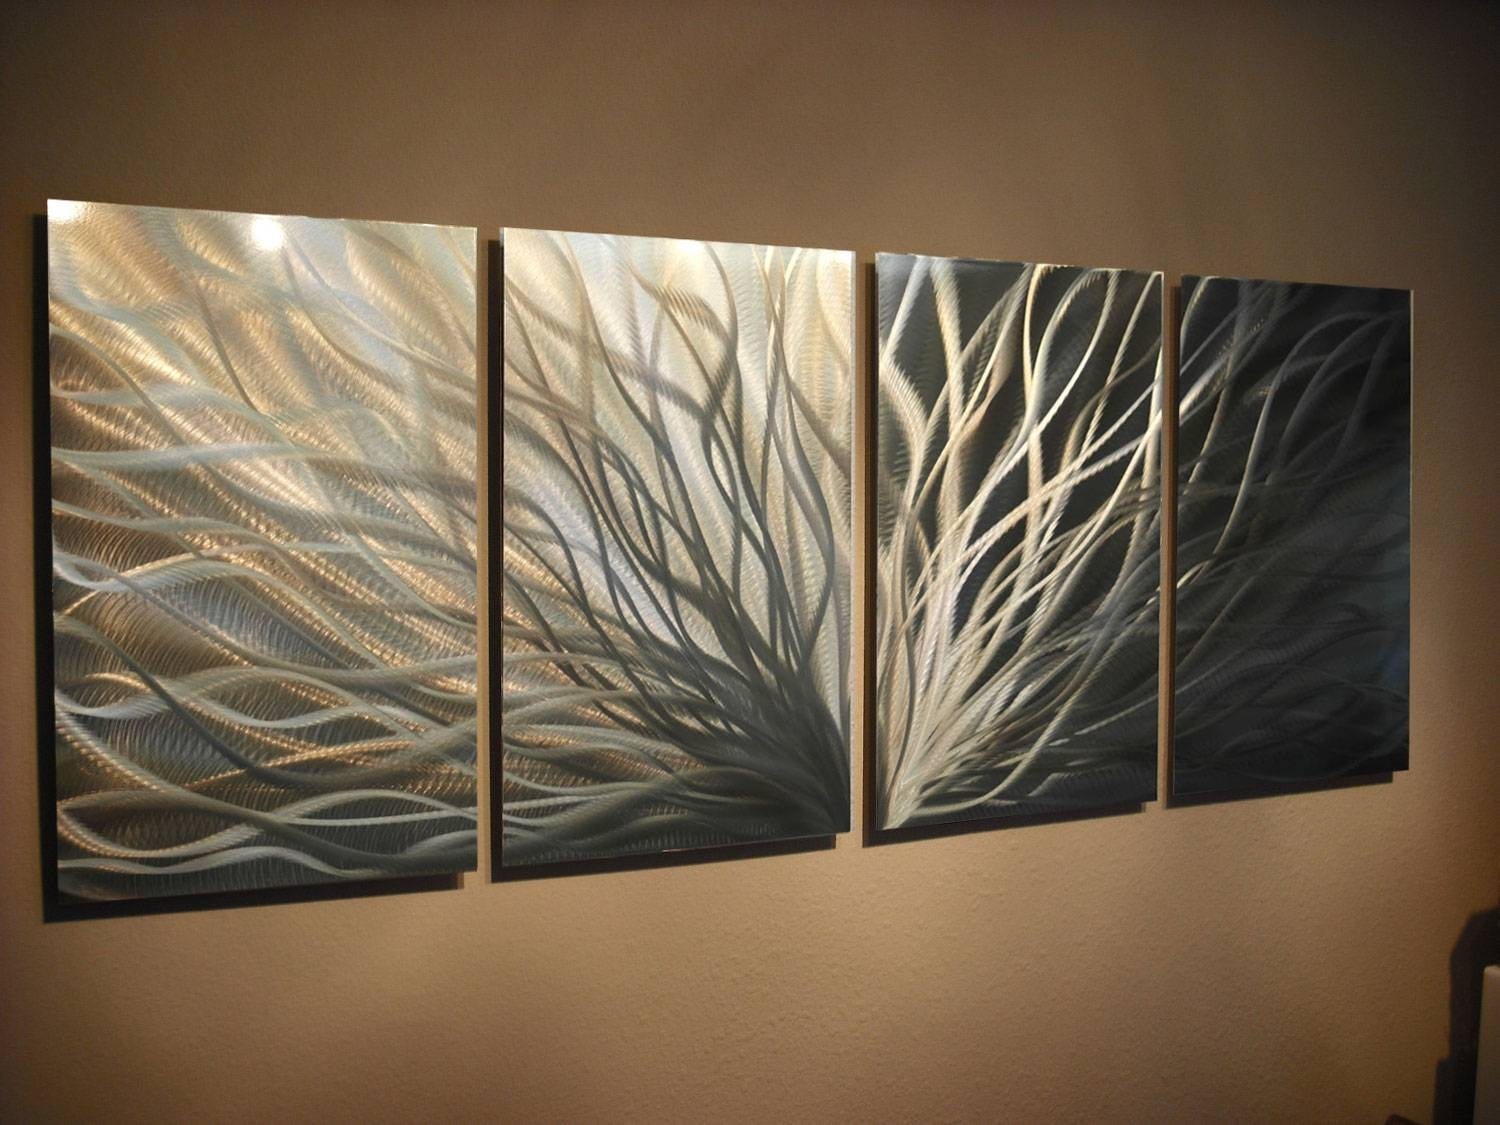 Abstract Metal Wall Art Radiance Gold Silver Contemporary Modern Inside 2017 Abstract Metal Wall Art (View 11 of 20)